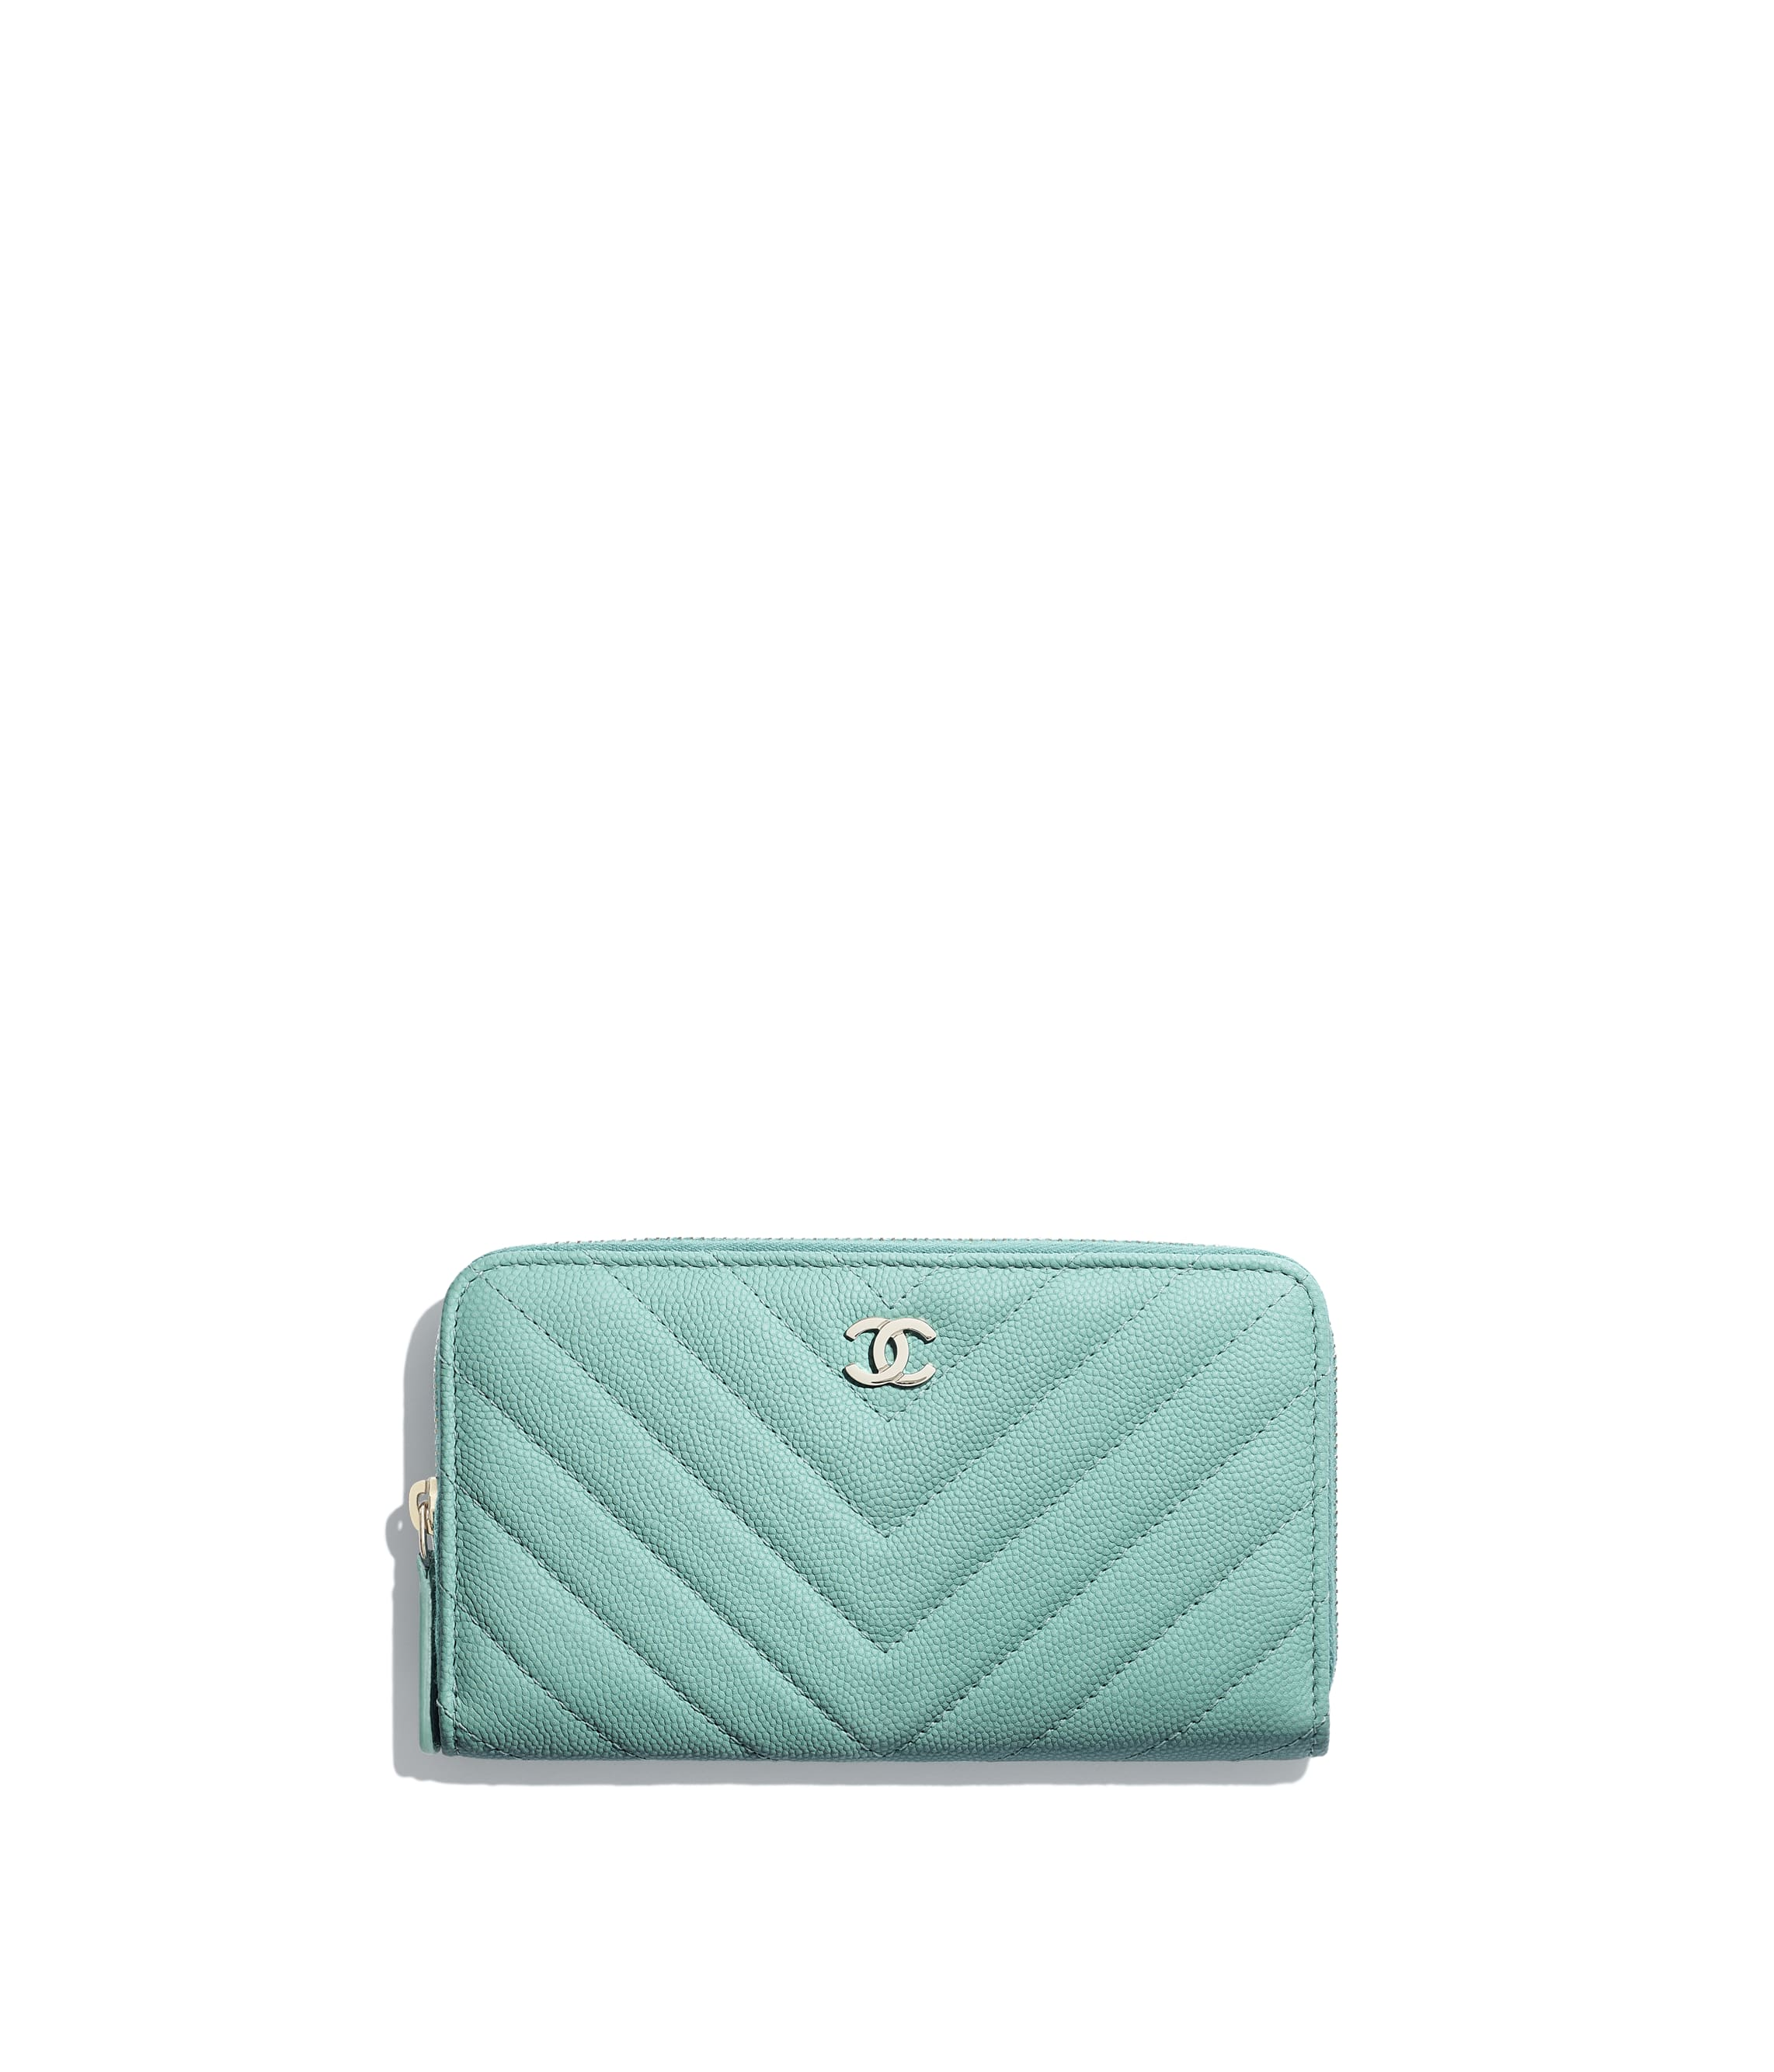 b08985b37fda Small leather goods - CHANEL